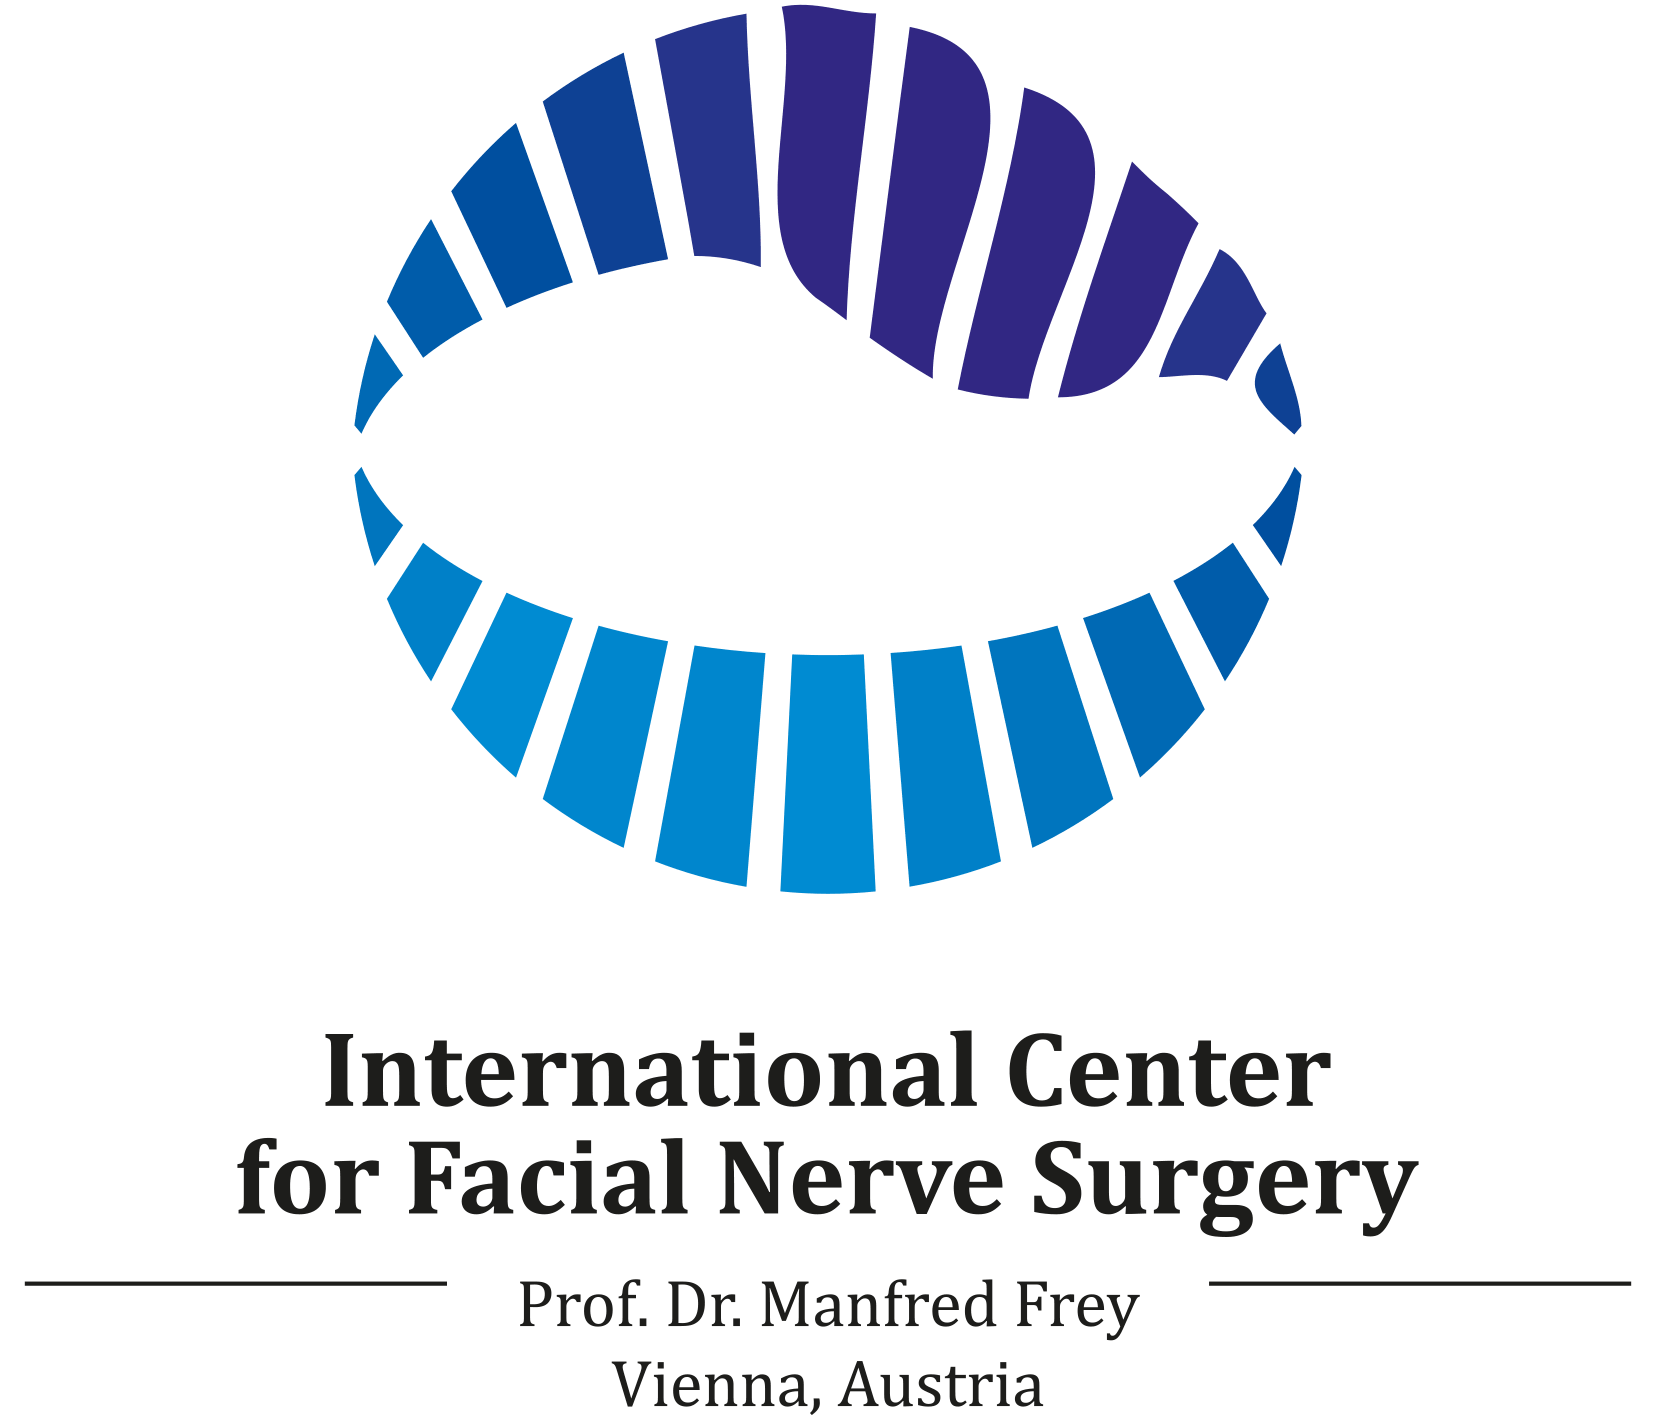 International Center for Facial Nerve Surgery.